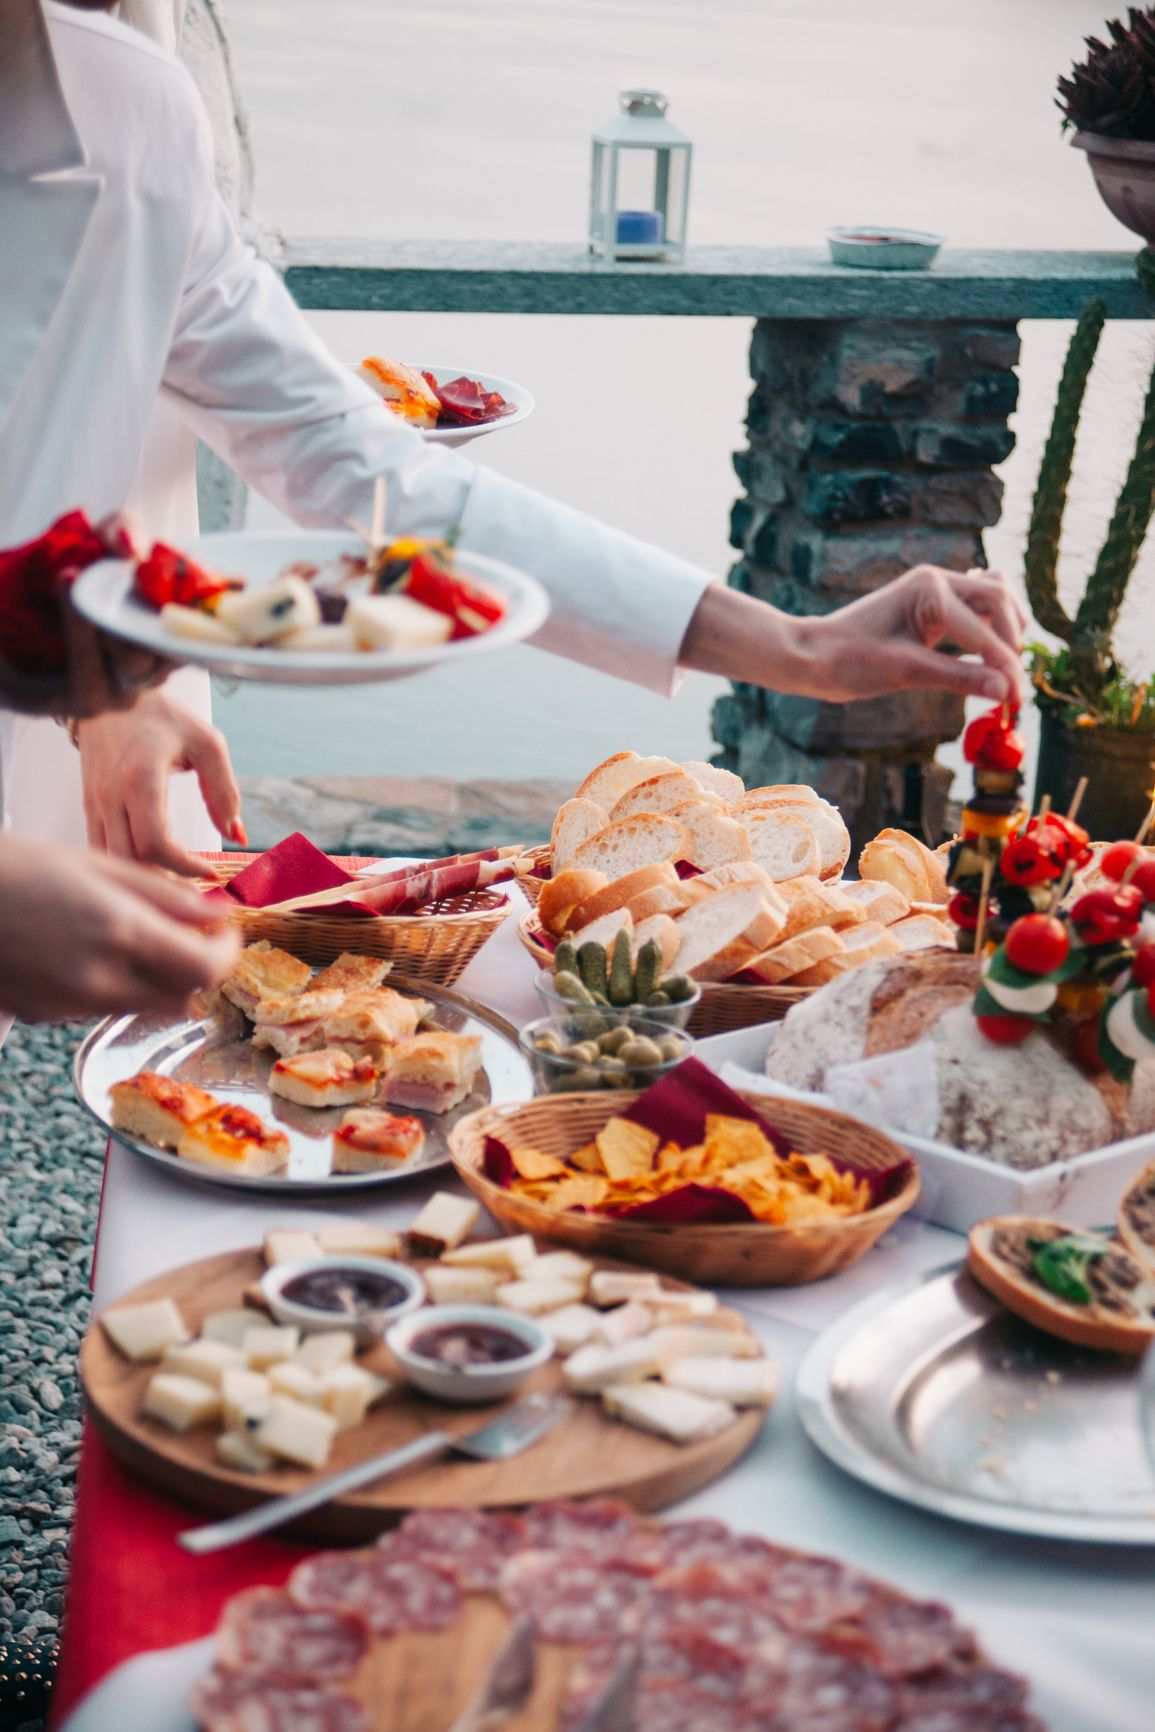 How much does wedding catering cost wedding catering